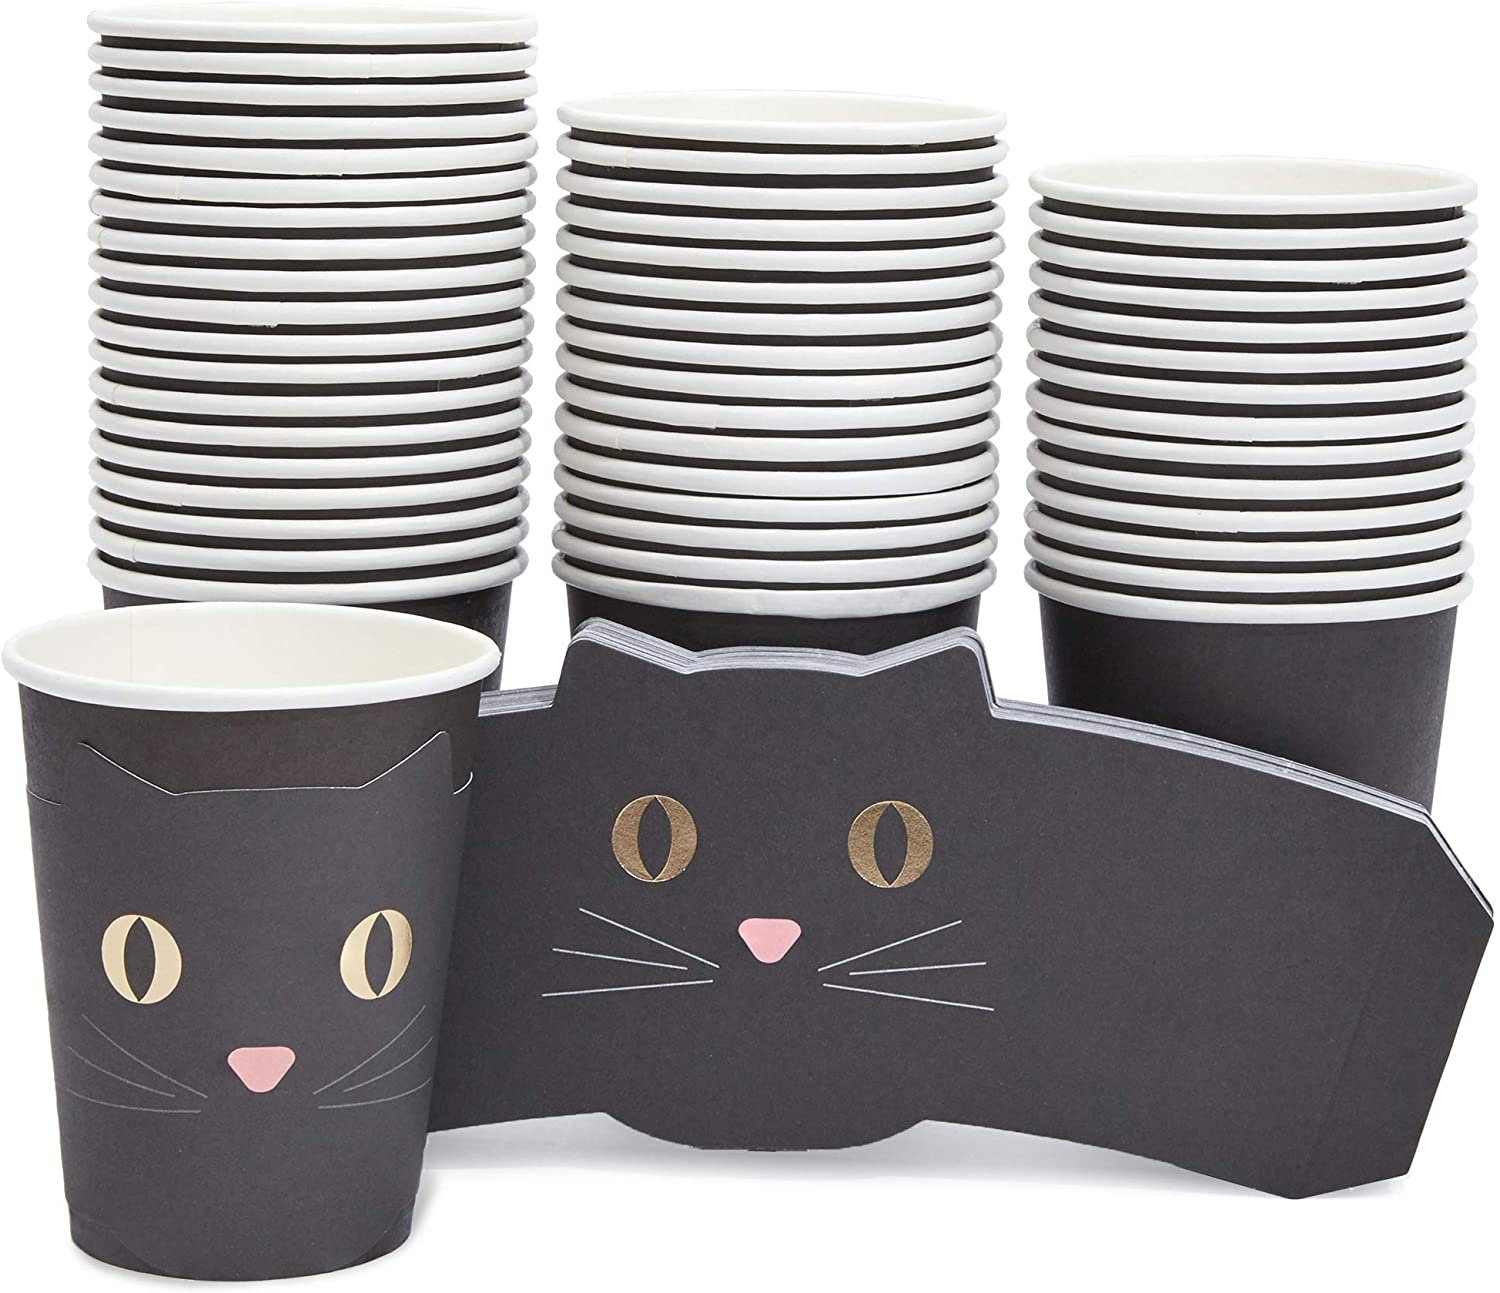 Blue Panda Halloween 9 Ounce Paper Party Cups and Die-Cut Cat Sleeves (50 Pack)